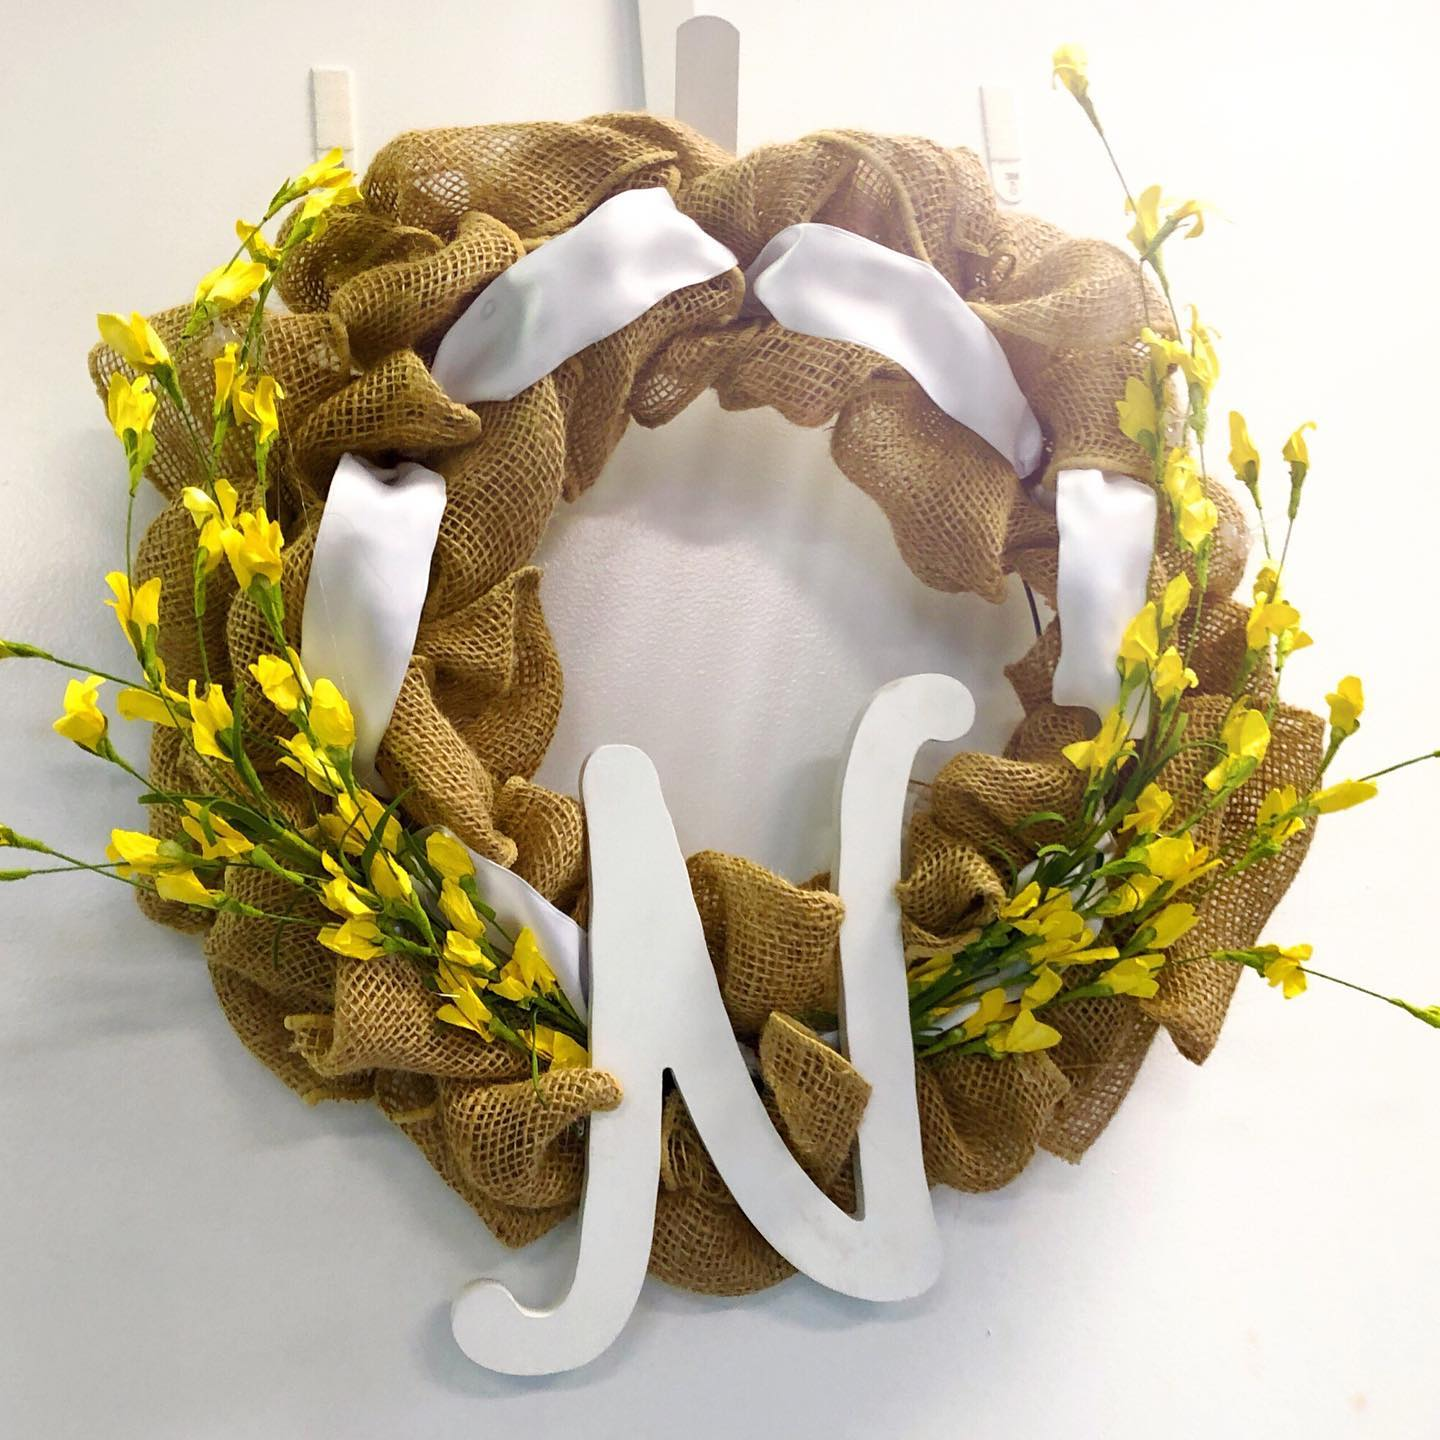 $45 - Burlap/Mesh Wreath Making   Learn to weave burlap or mesh and decorate. Year round, Halloween, holidays, and seasonal options available.